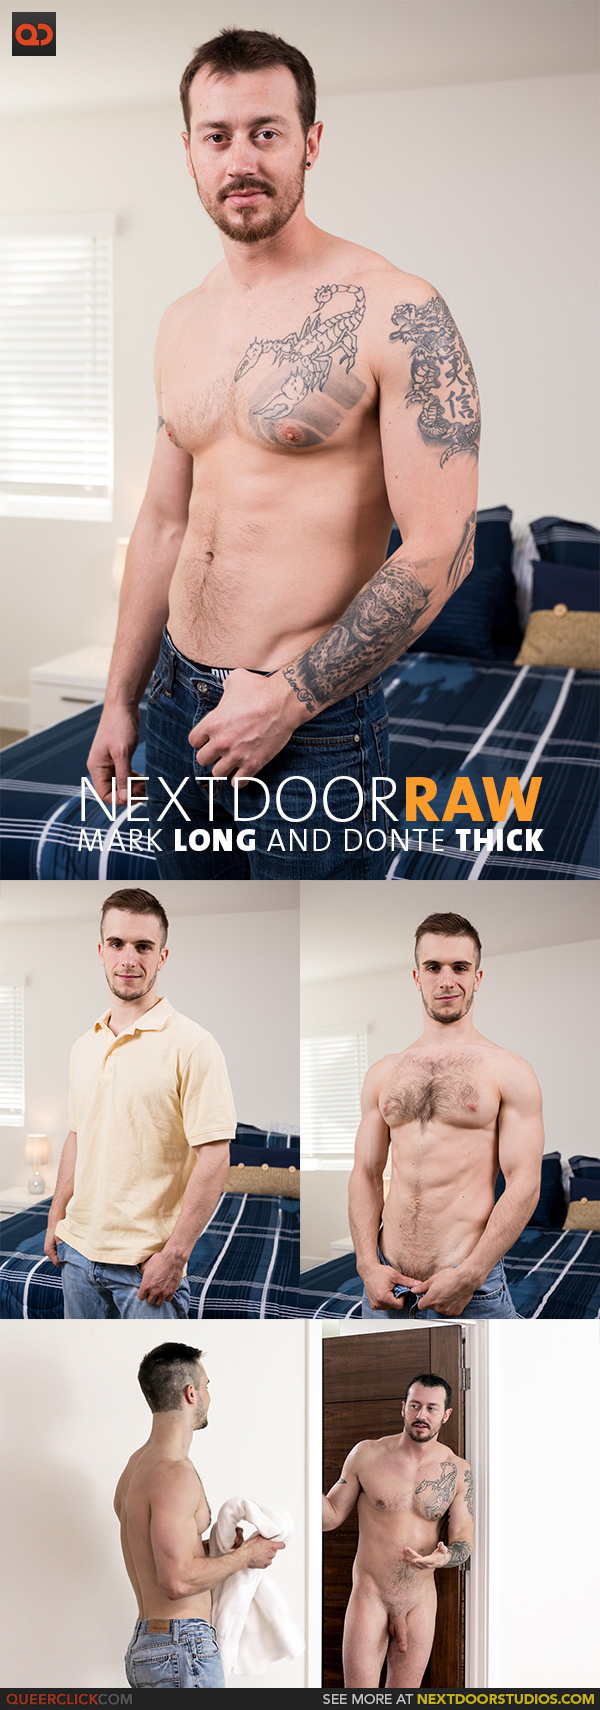 Next Door Studios: Mark Long and Donte Thick